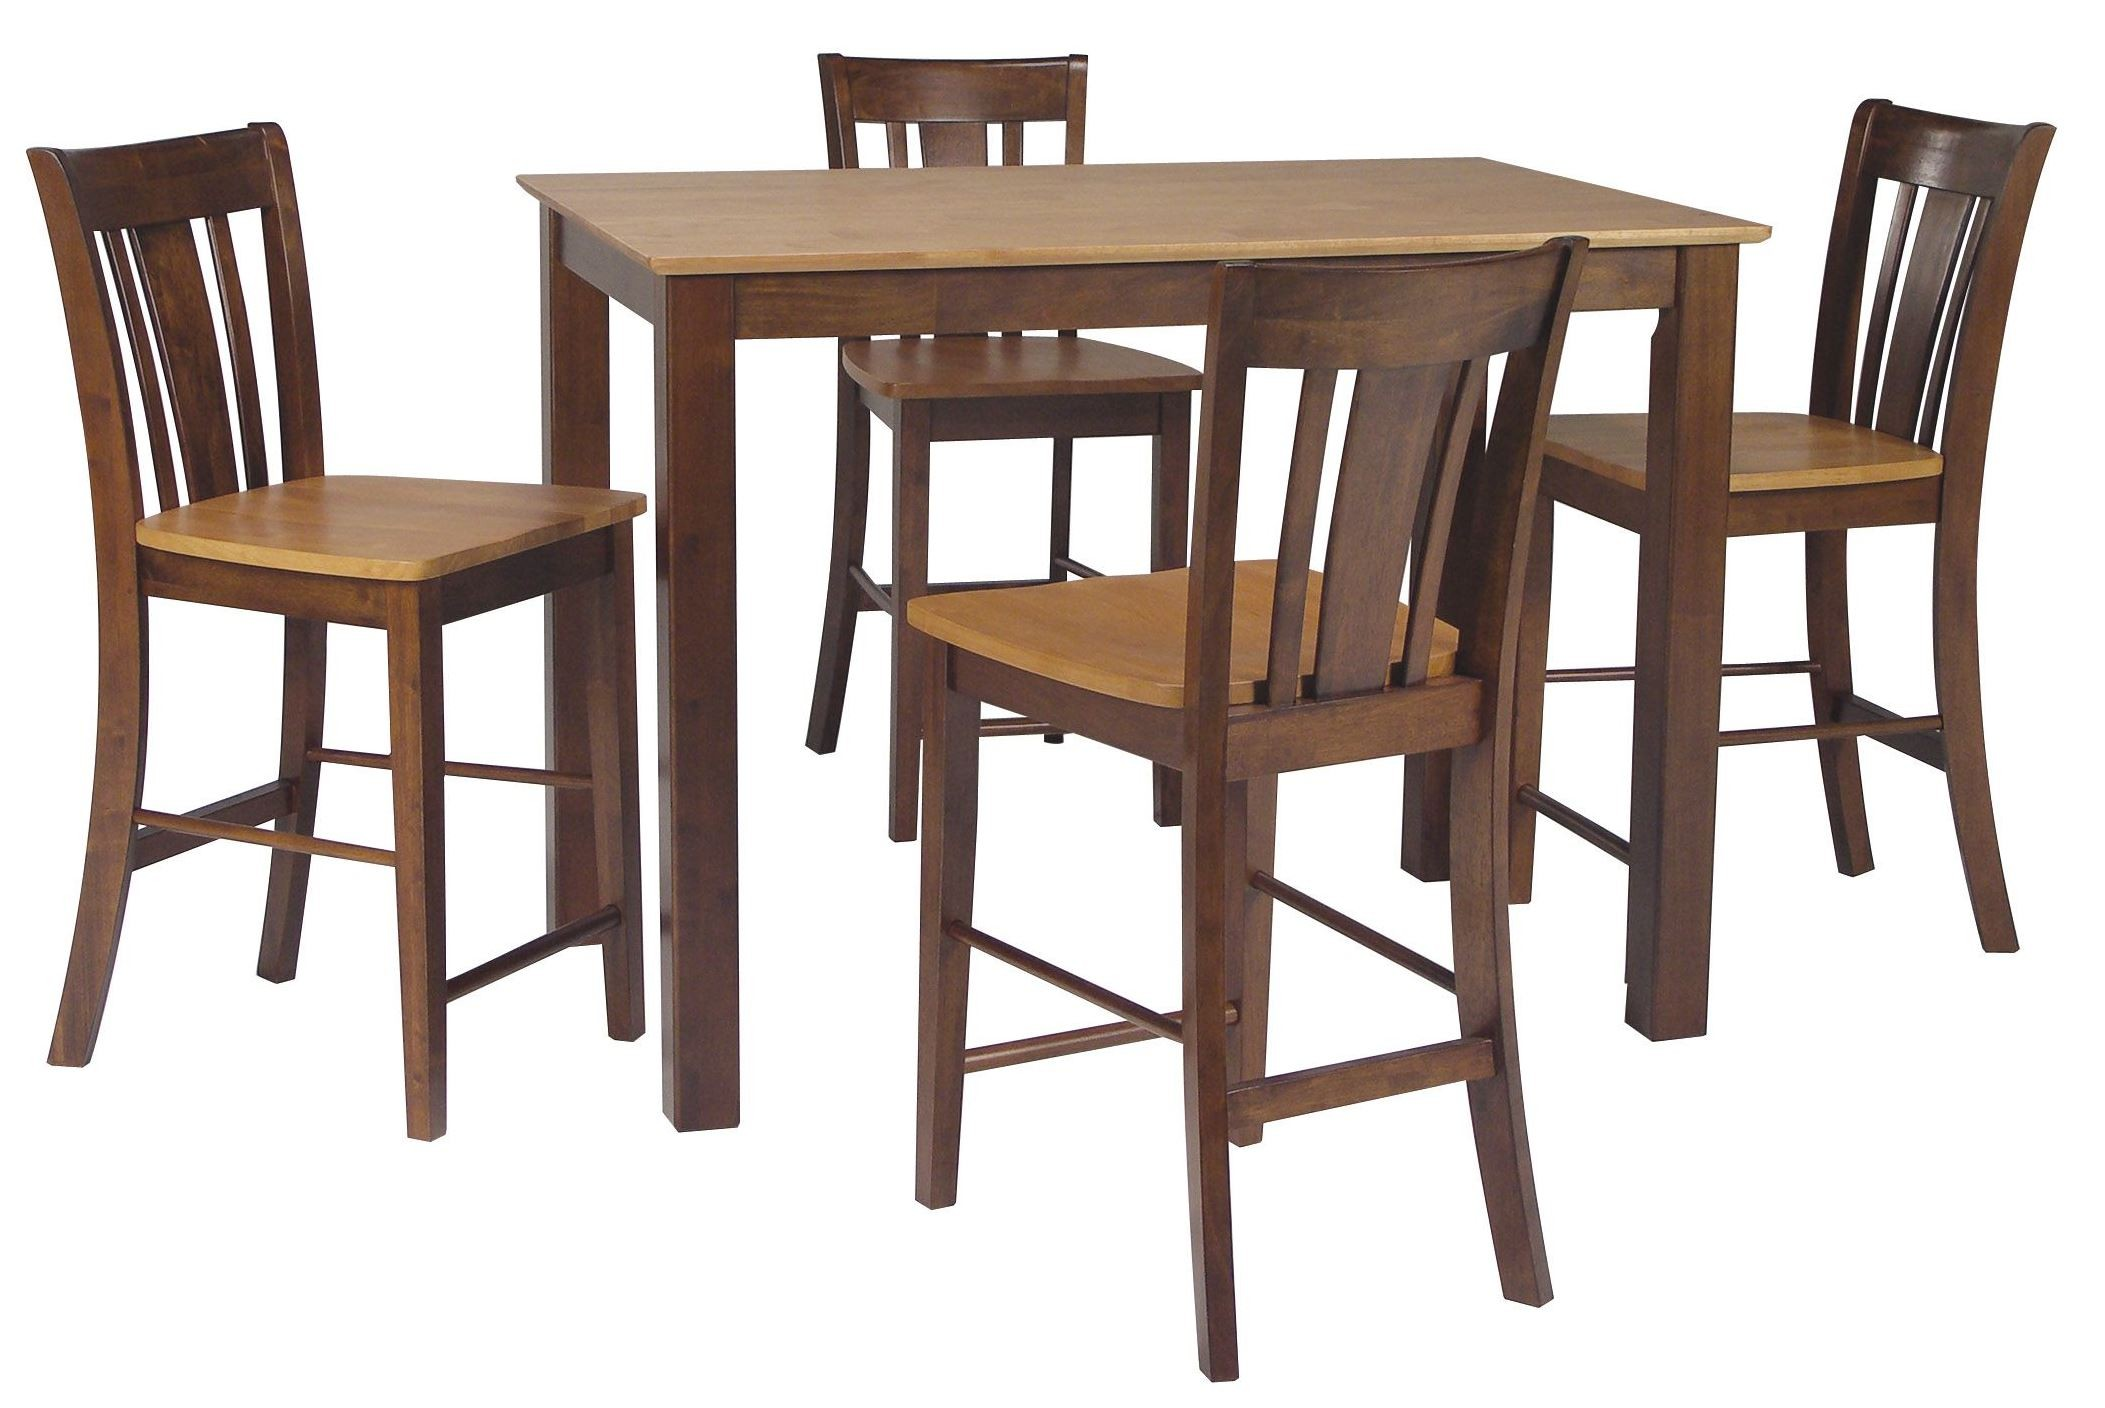 Dining essentials cinnamon espresso 48 rectangular for Dining room essentials